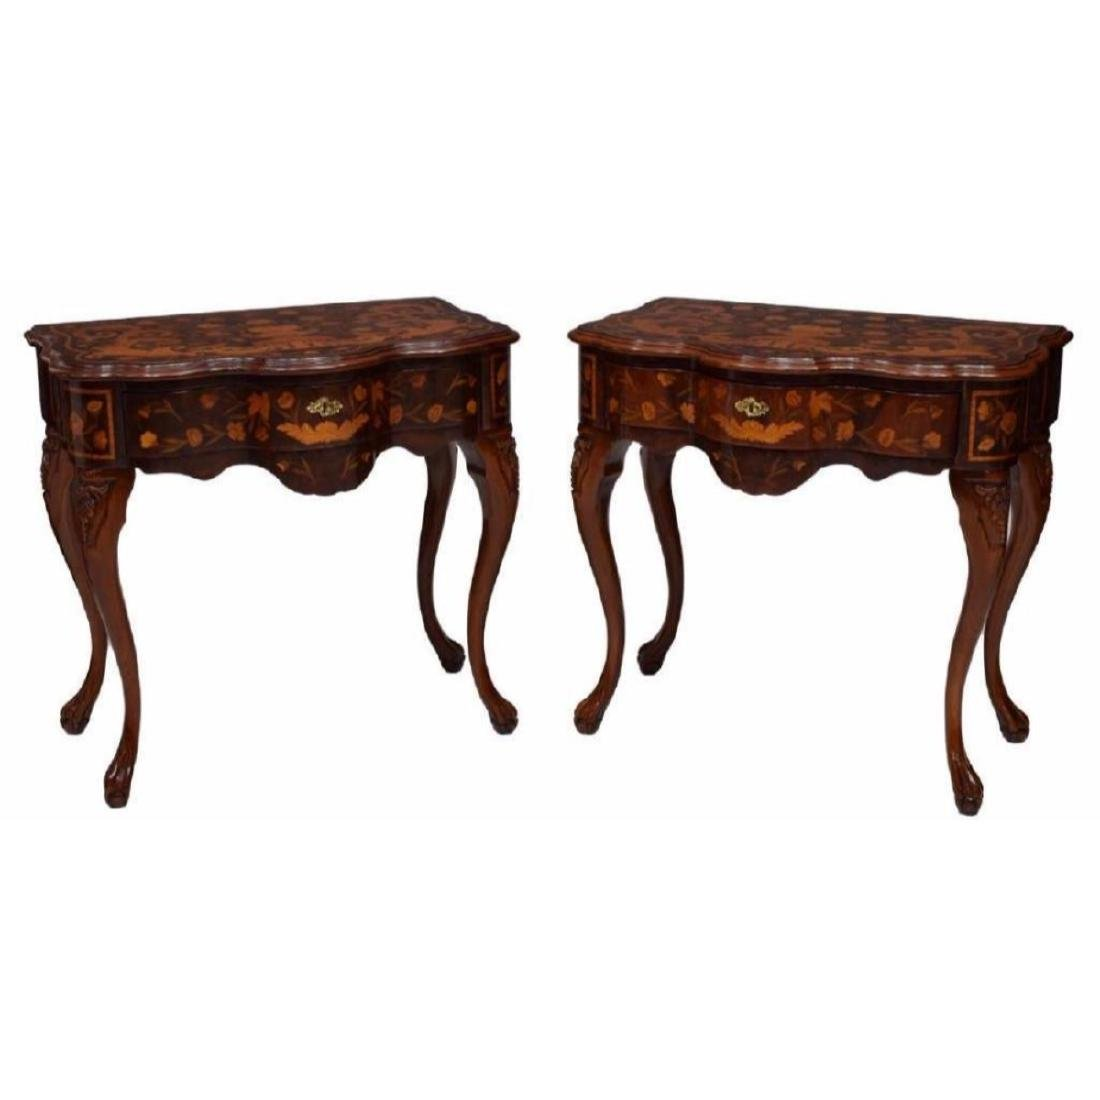 Pair of Italian Floral Inlaid Console Tables